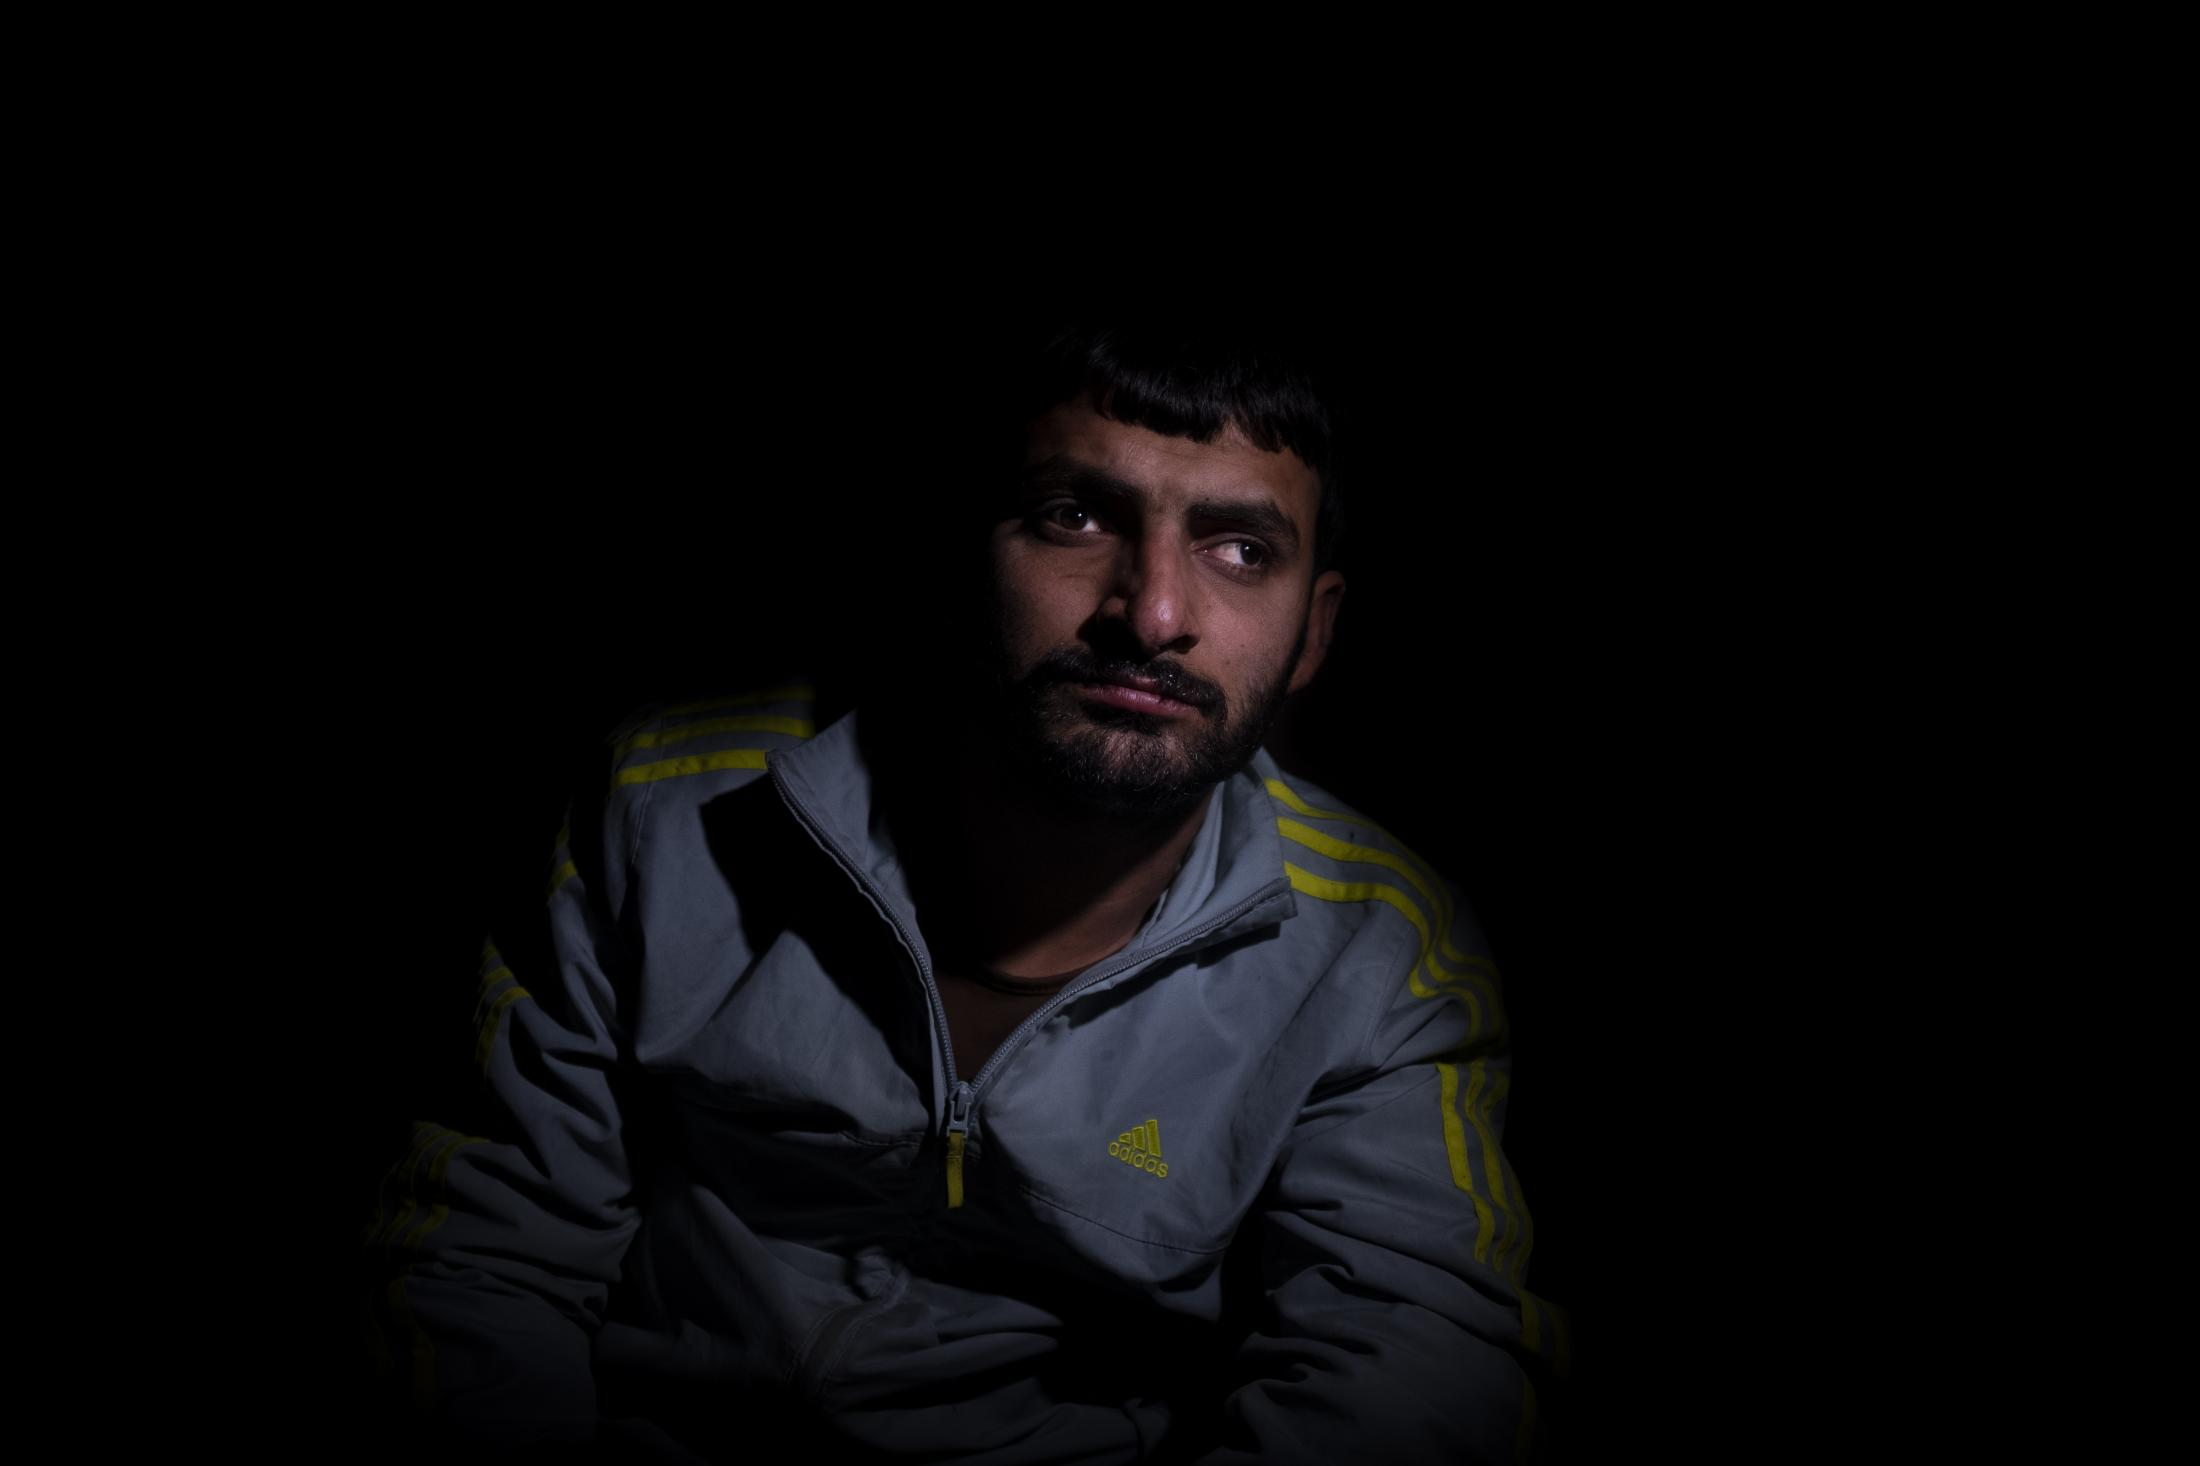 Mustafa Bakir, 25, could only escape thanks to the help of fellow villagers in Serekaniye. He´s on a wheelchair and relies fully on his mother. After the withdrawal of US troops from northern Syria in October 2019, Turkey launched an offensive against the predominantly Kurdish areas in the northeast of the country along Islamist forces. Calls for war crimes investigations into the conduct of Ankara-backed militias are mounting ever since. (Andoni Lubaki / Euskal Fondoa)